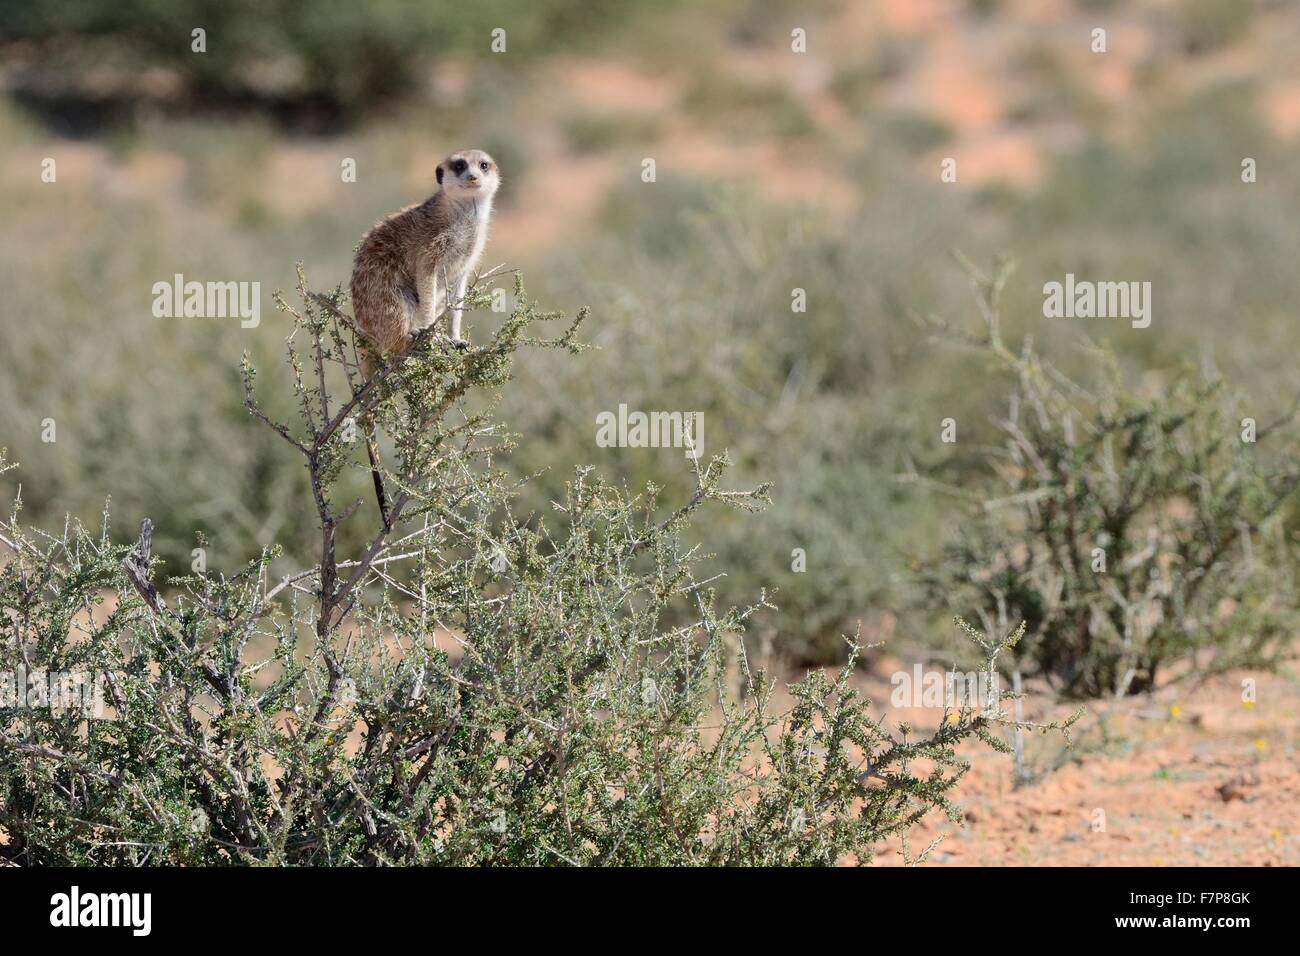 Meerkat (Suricata suricatta), adult female standing at the top of a bush,Kgalagadi Transfrontier Park,Northern Cape,South - Stock Image